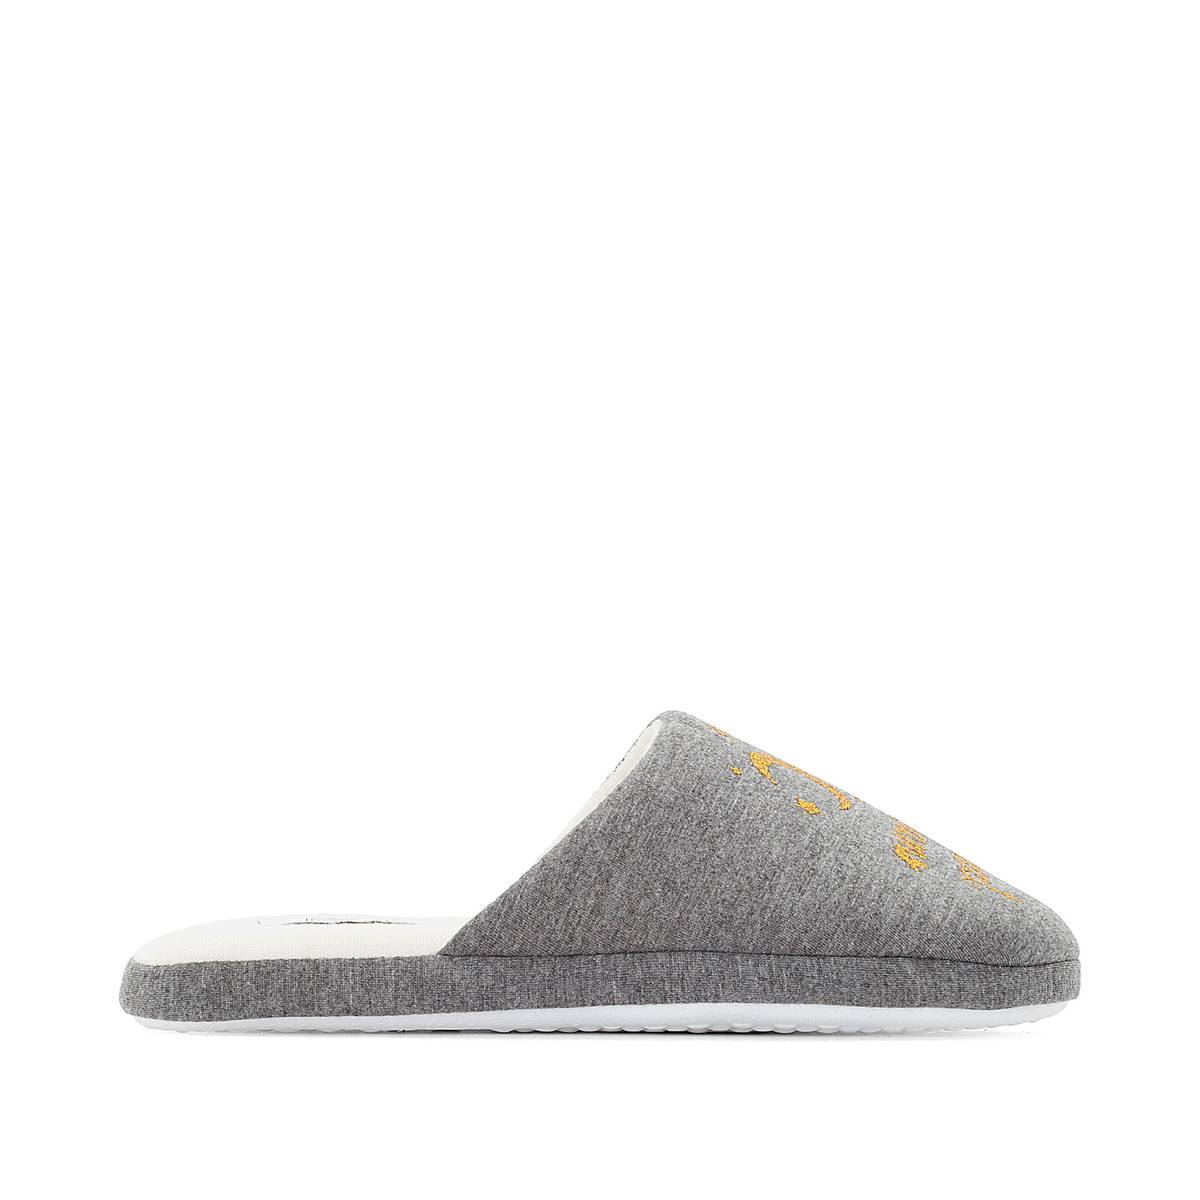 La Redoute Collections Zapatillas de casa con mensaje brillante gris